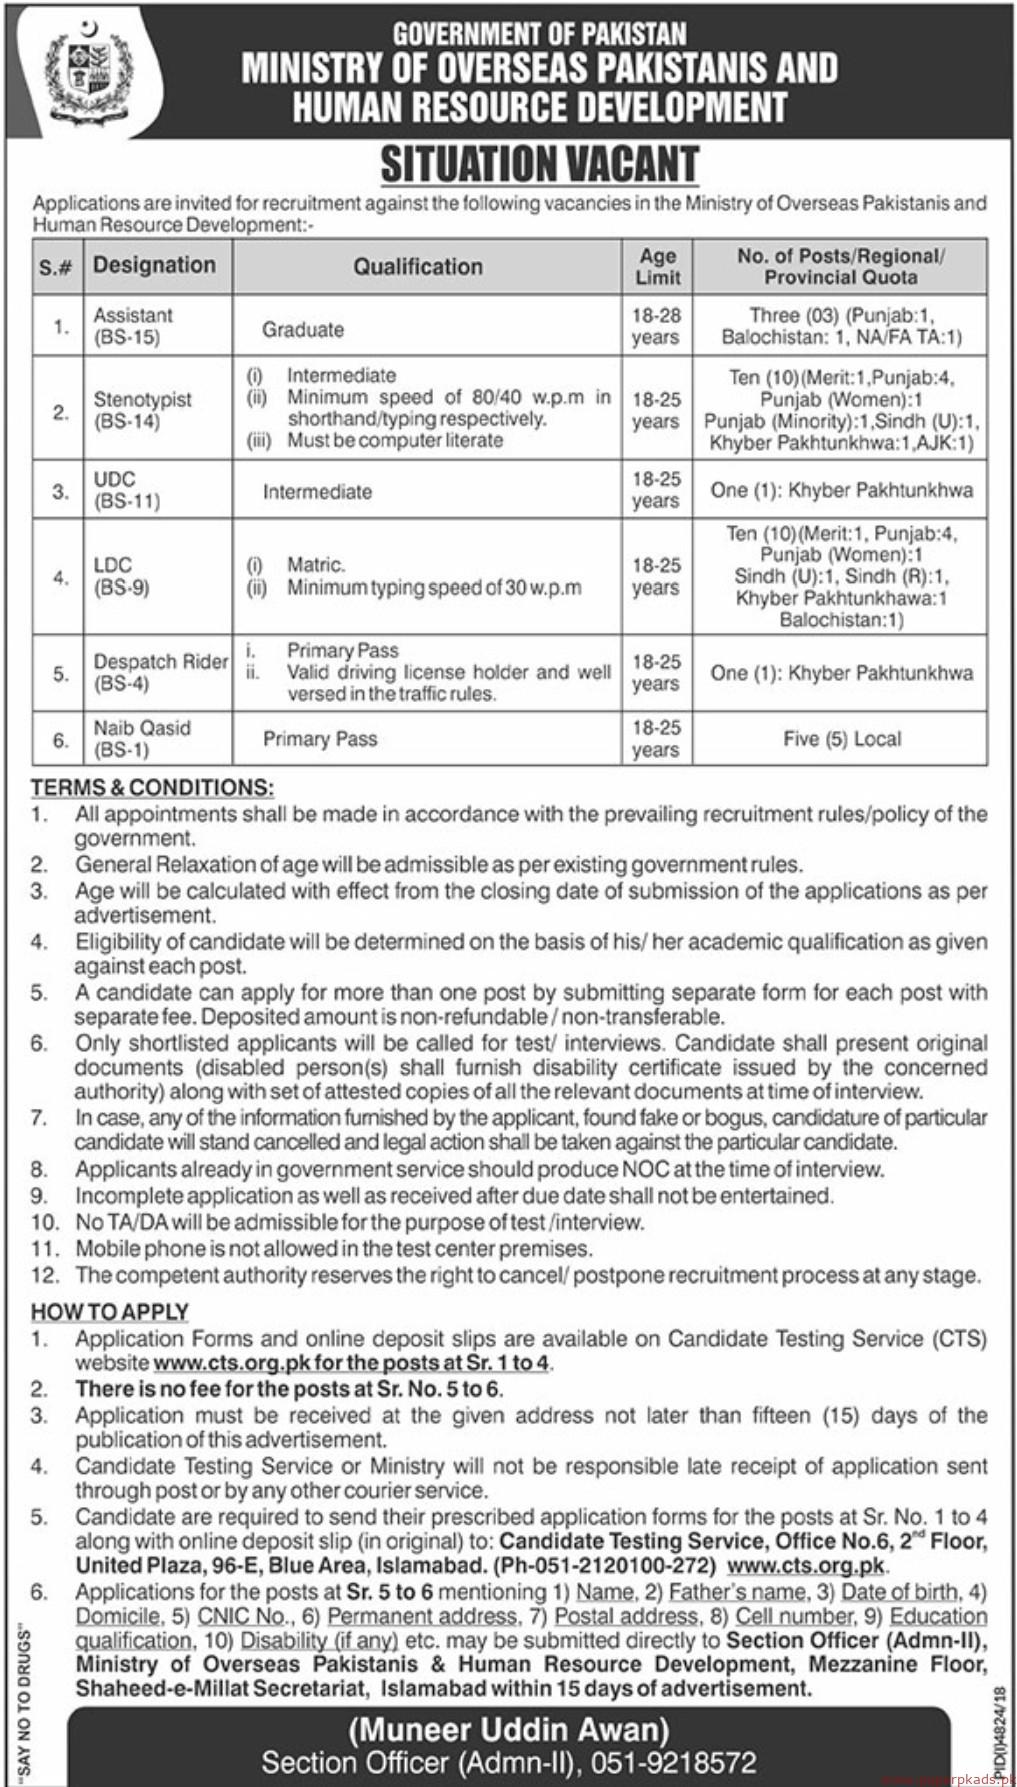 Government of Pakistan - Ministry of Overseas Pakistanis and Human Resource Development Jobs 2019 Latest